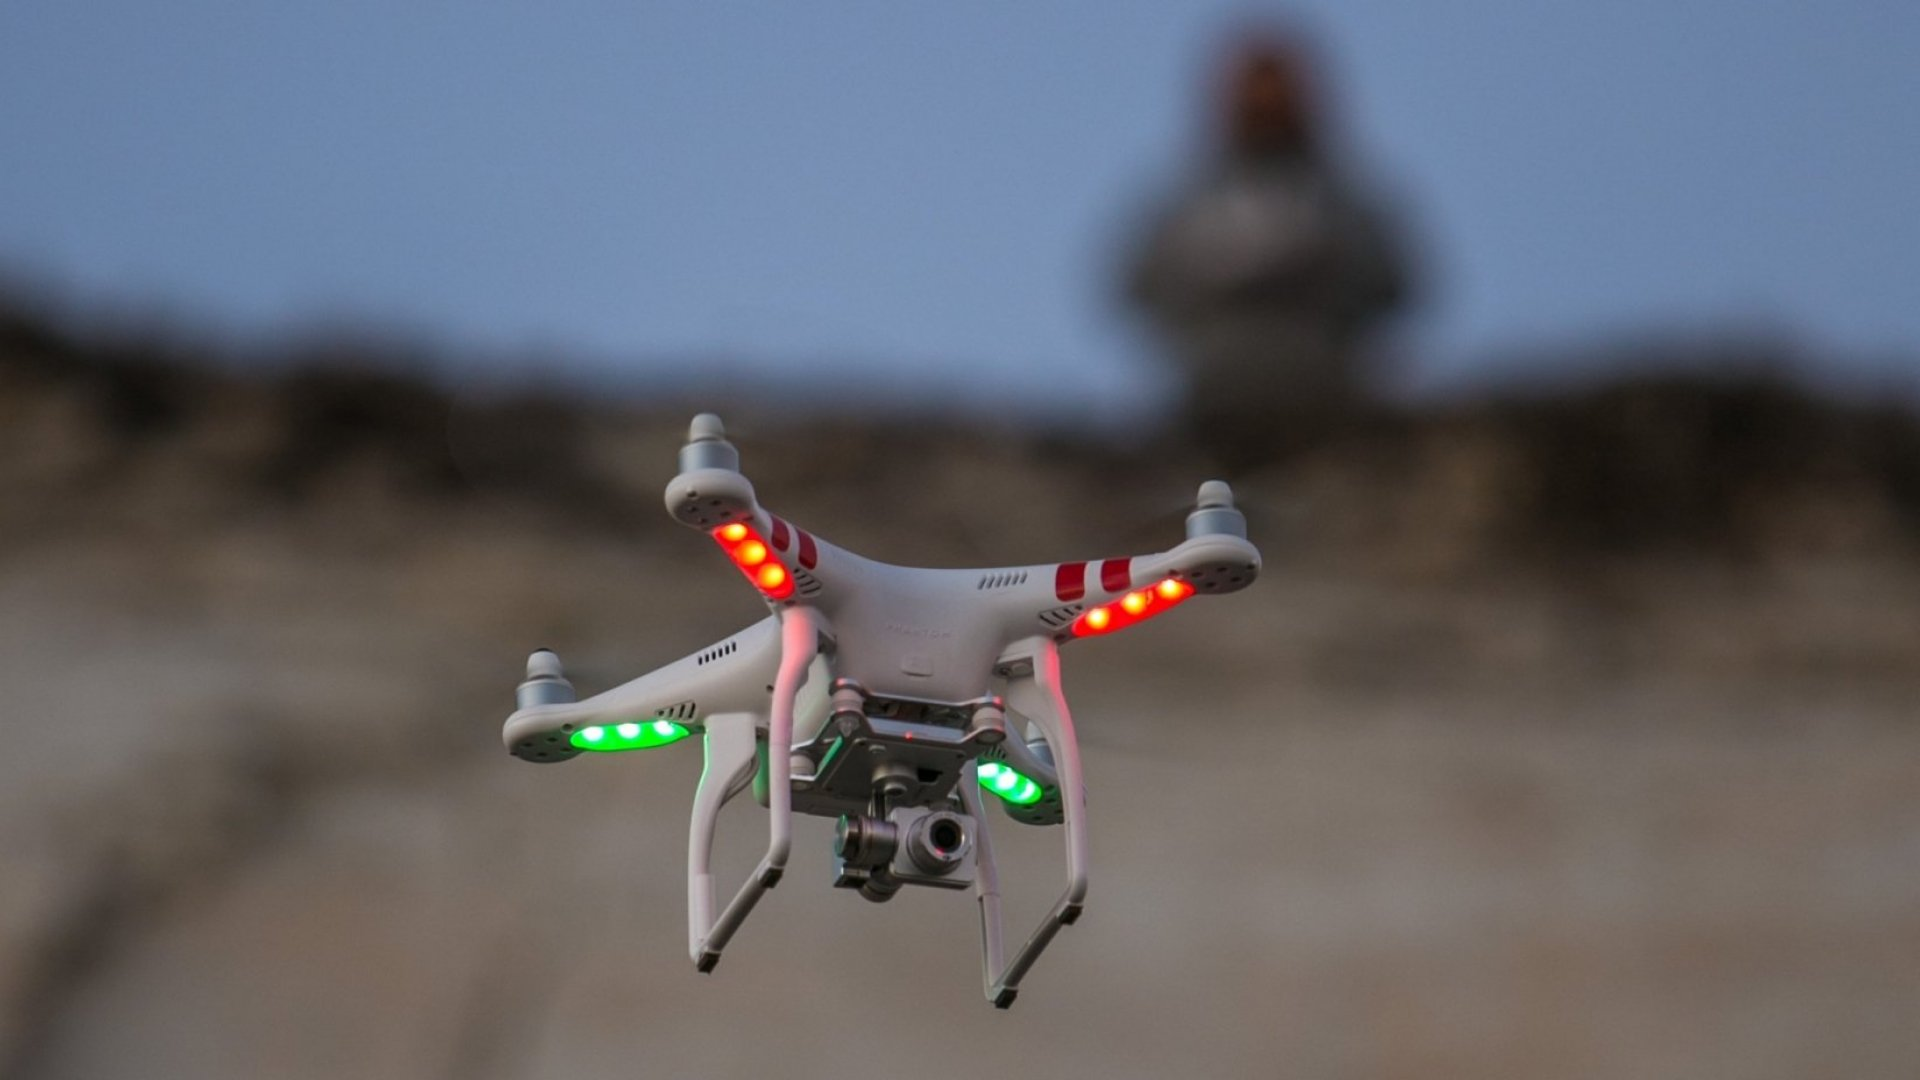 The LAPD SWAT Team to Use Drones Despite Community Protests